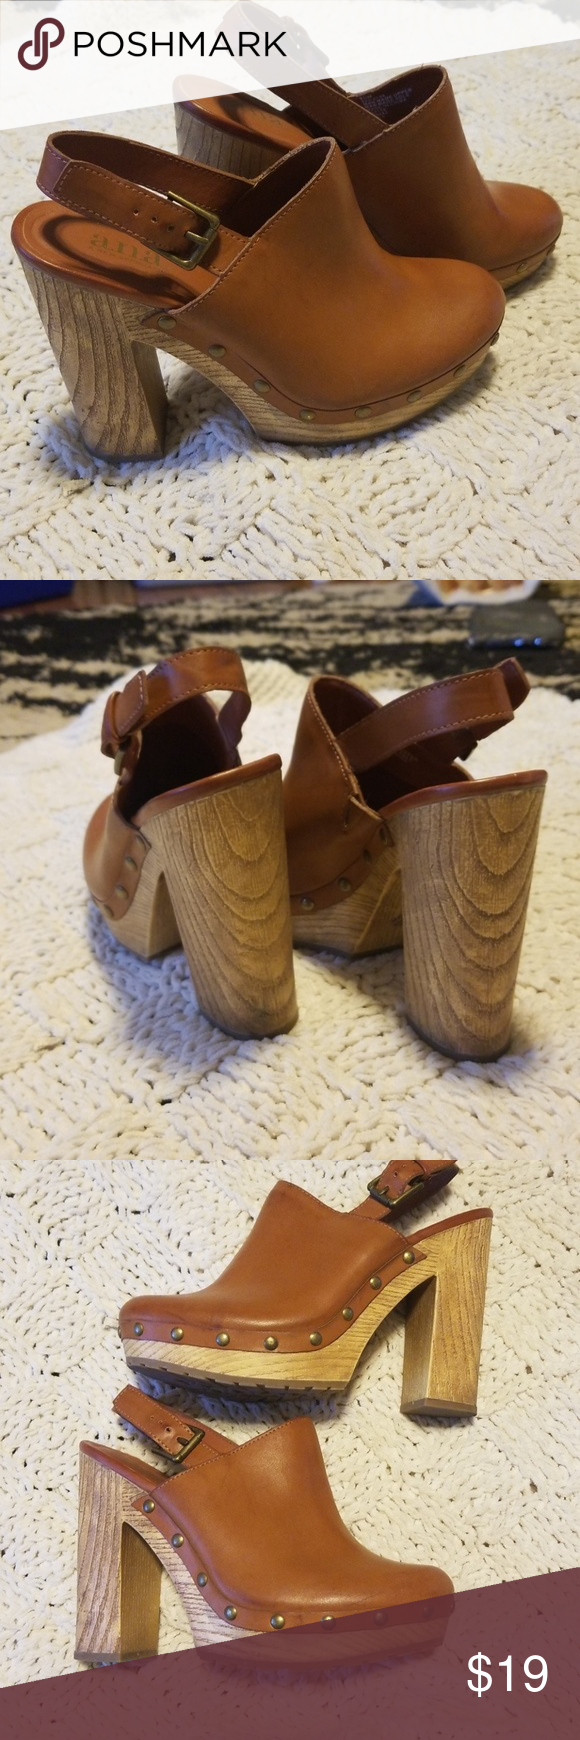 64e5bfde1b3 Mule style heels a.n.a. brand mules worn once! Like new condition. About a  5 inch heel. LOVE! 😍 just makes me TOO TALL 😂 a new approach Shoes Heels